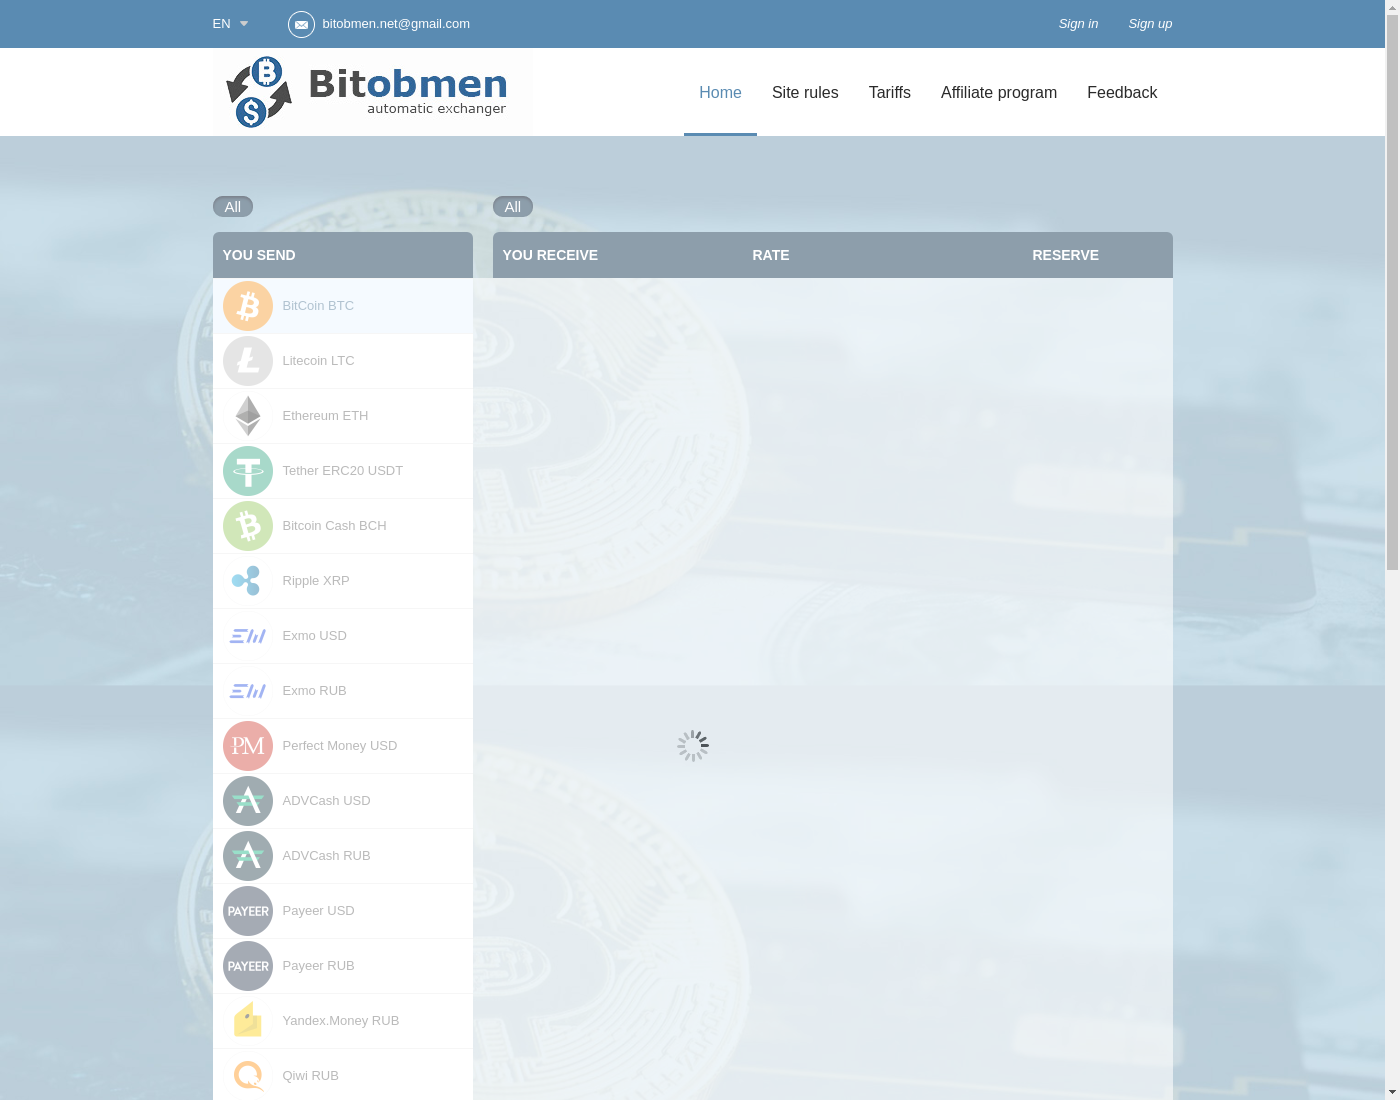 bitobmen user interface: the home page in English